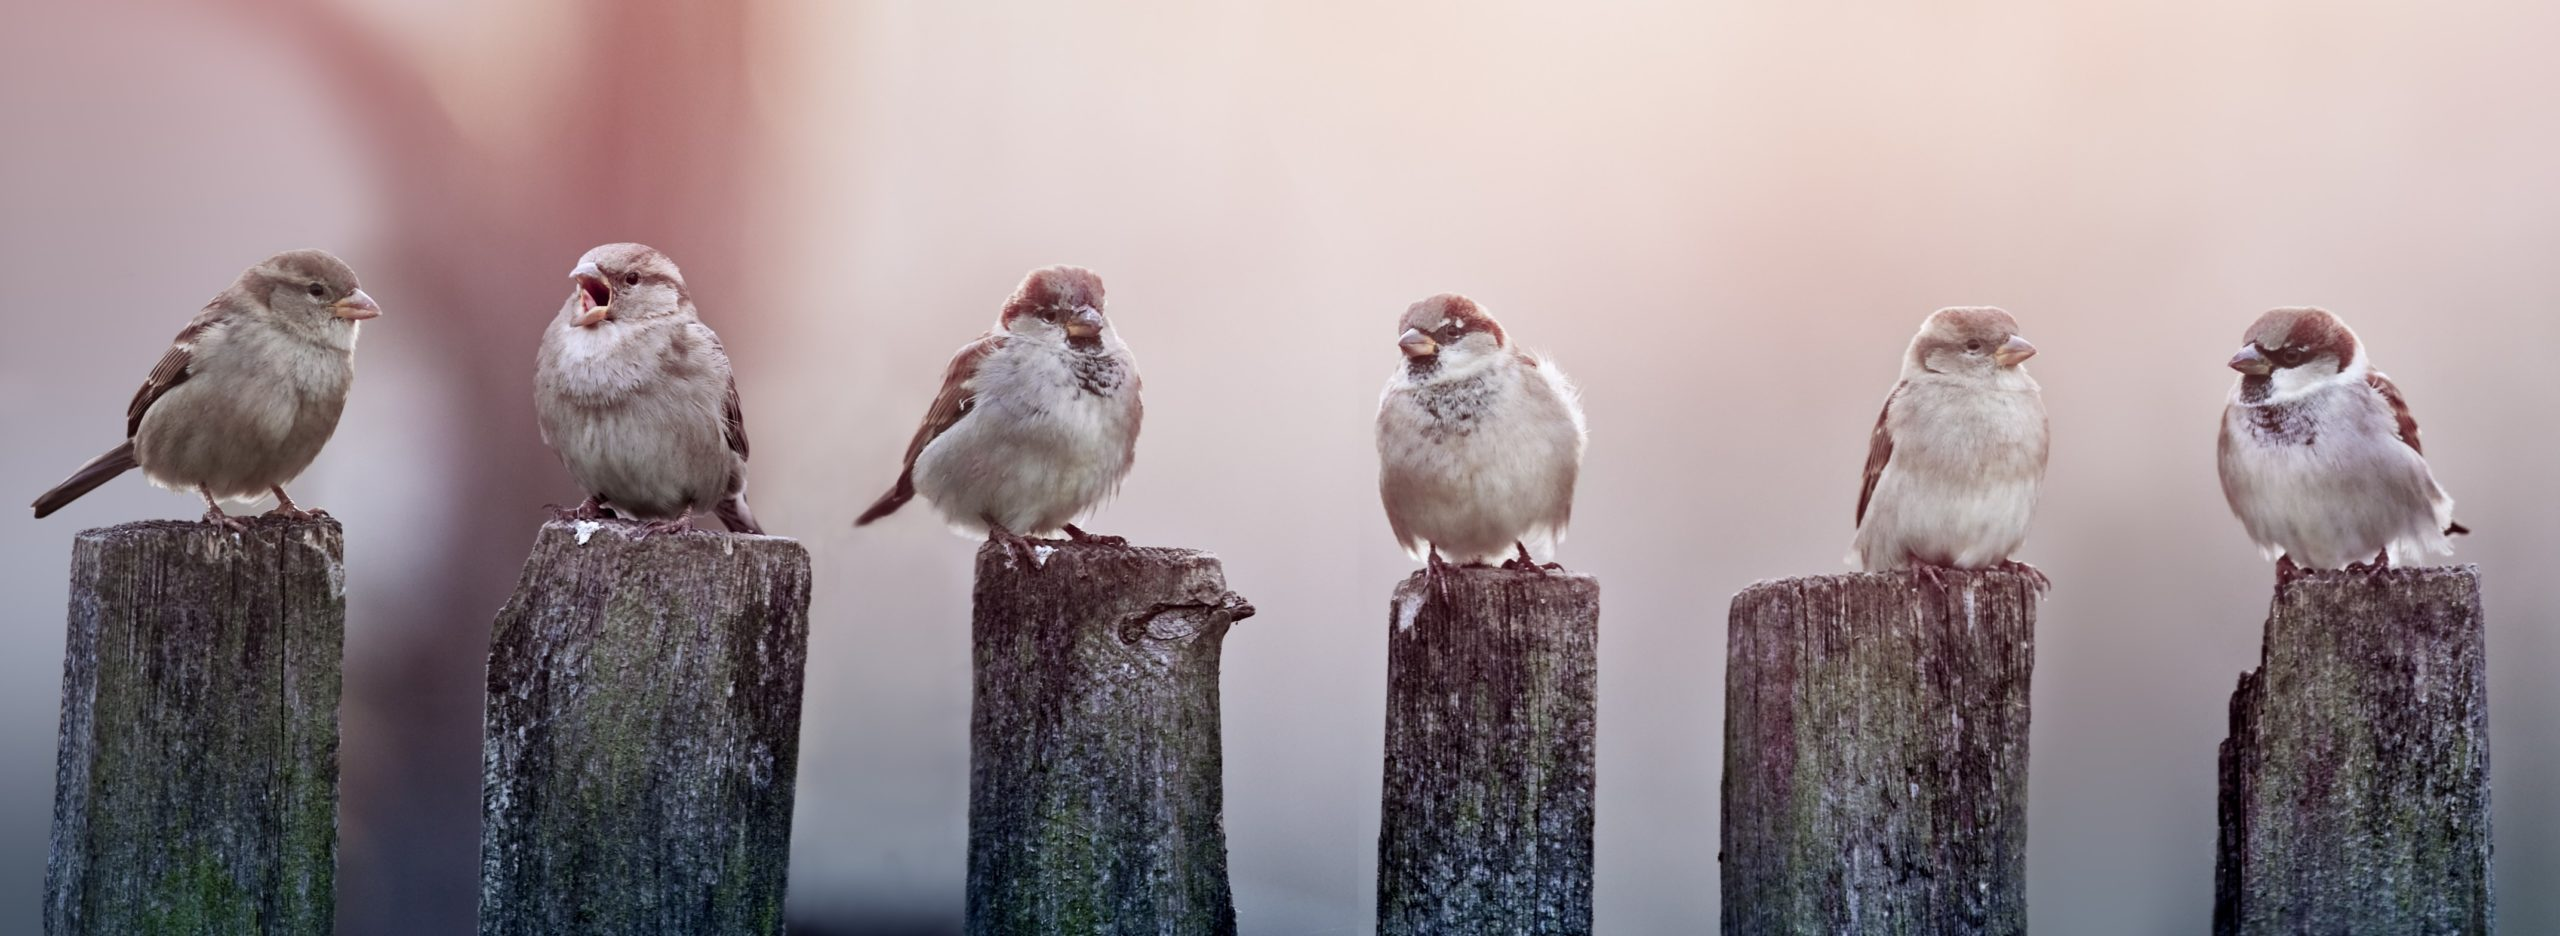 Picture of a flock of house sparrows